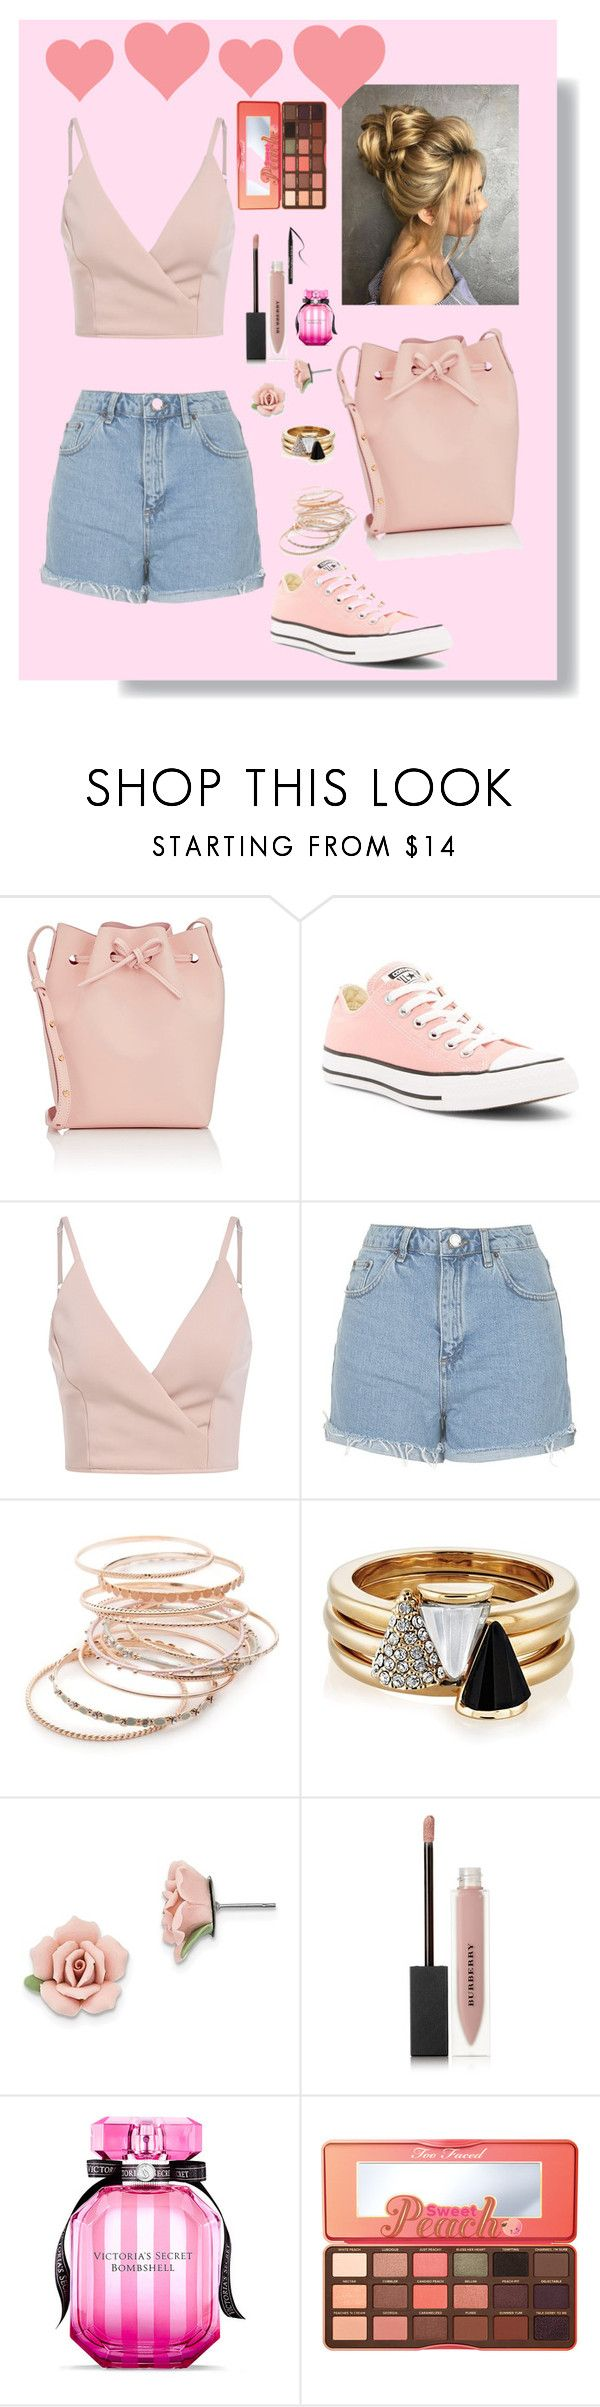 """""""Pinkie peach"""" by cutegoth ❤ liked on Polyvore featuring Mansur Gavriel, Converse, Topshop, Red Camel, Brixton, 1928, Burberry, Victoria's Secret and Too Faced Cosmetics"""